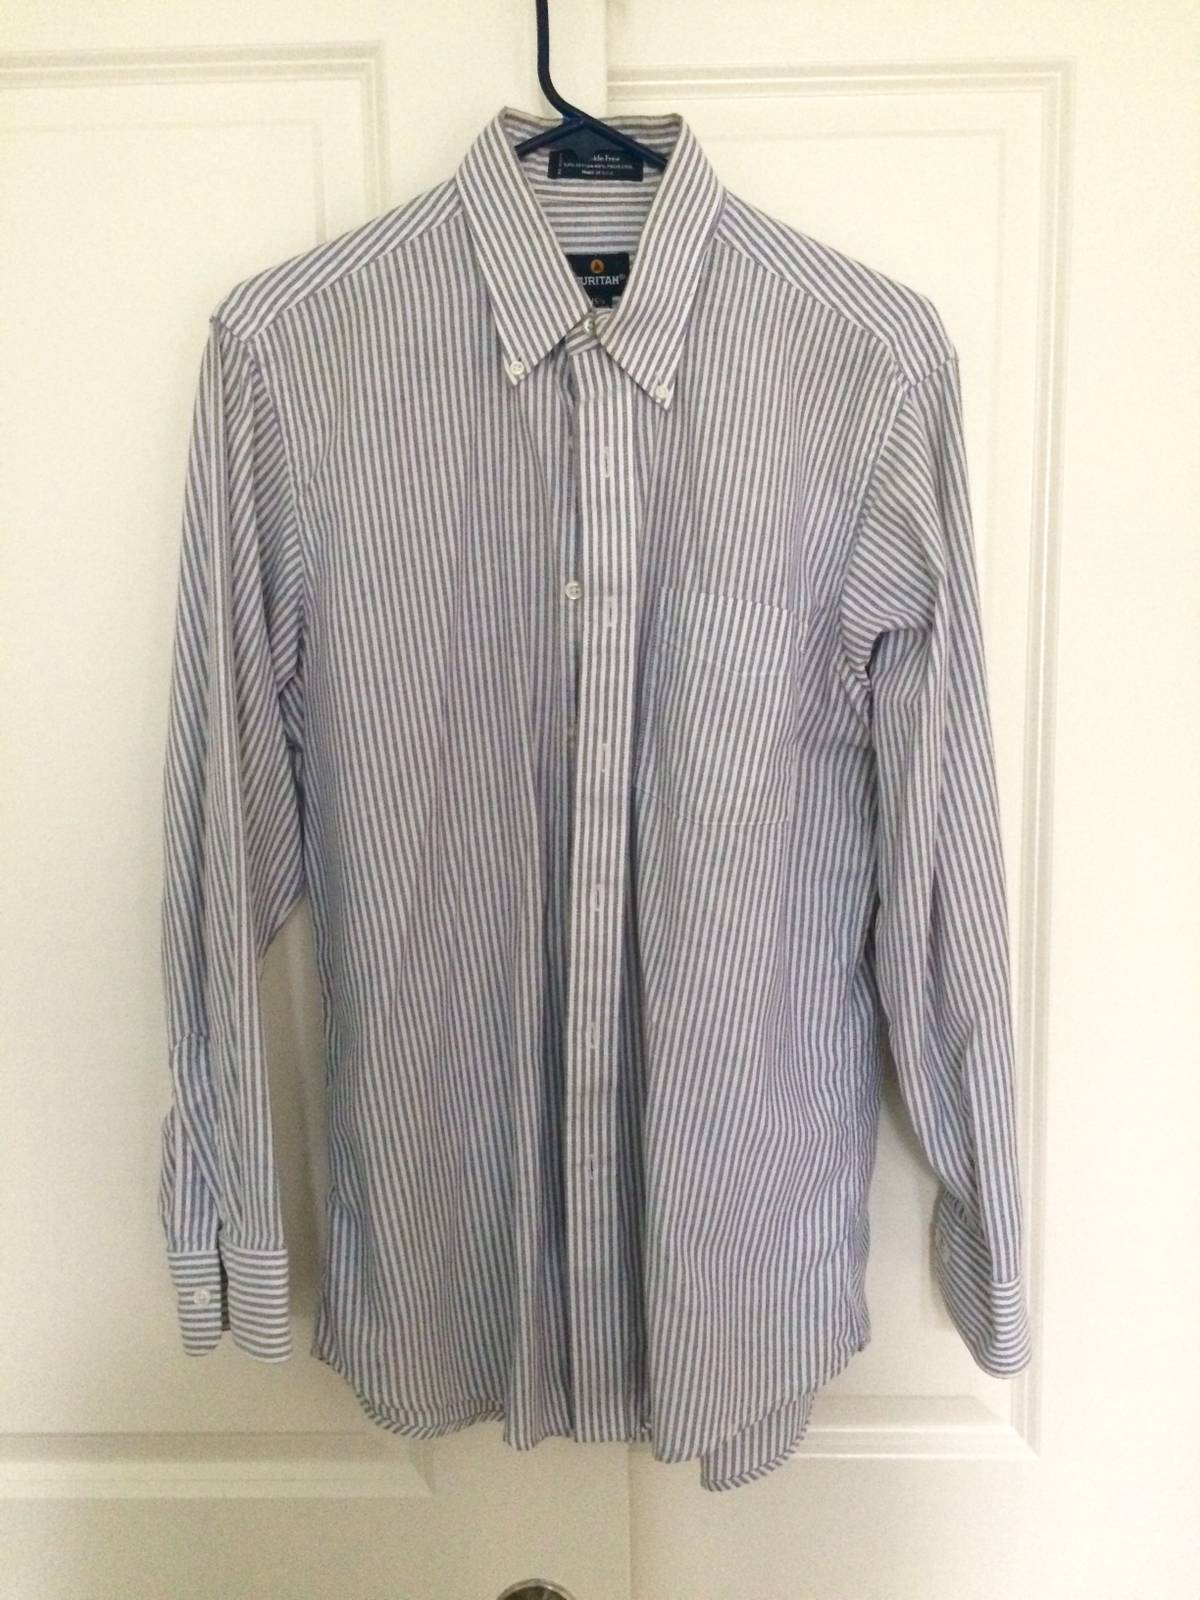 Puritan Striped Button Up Size M Shirts Button Ups For Sale